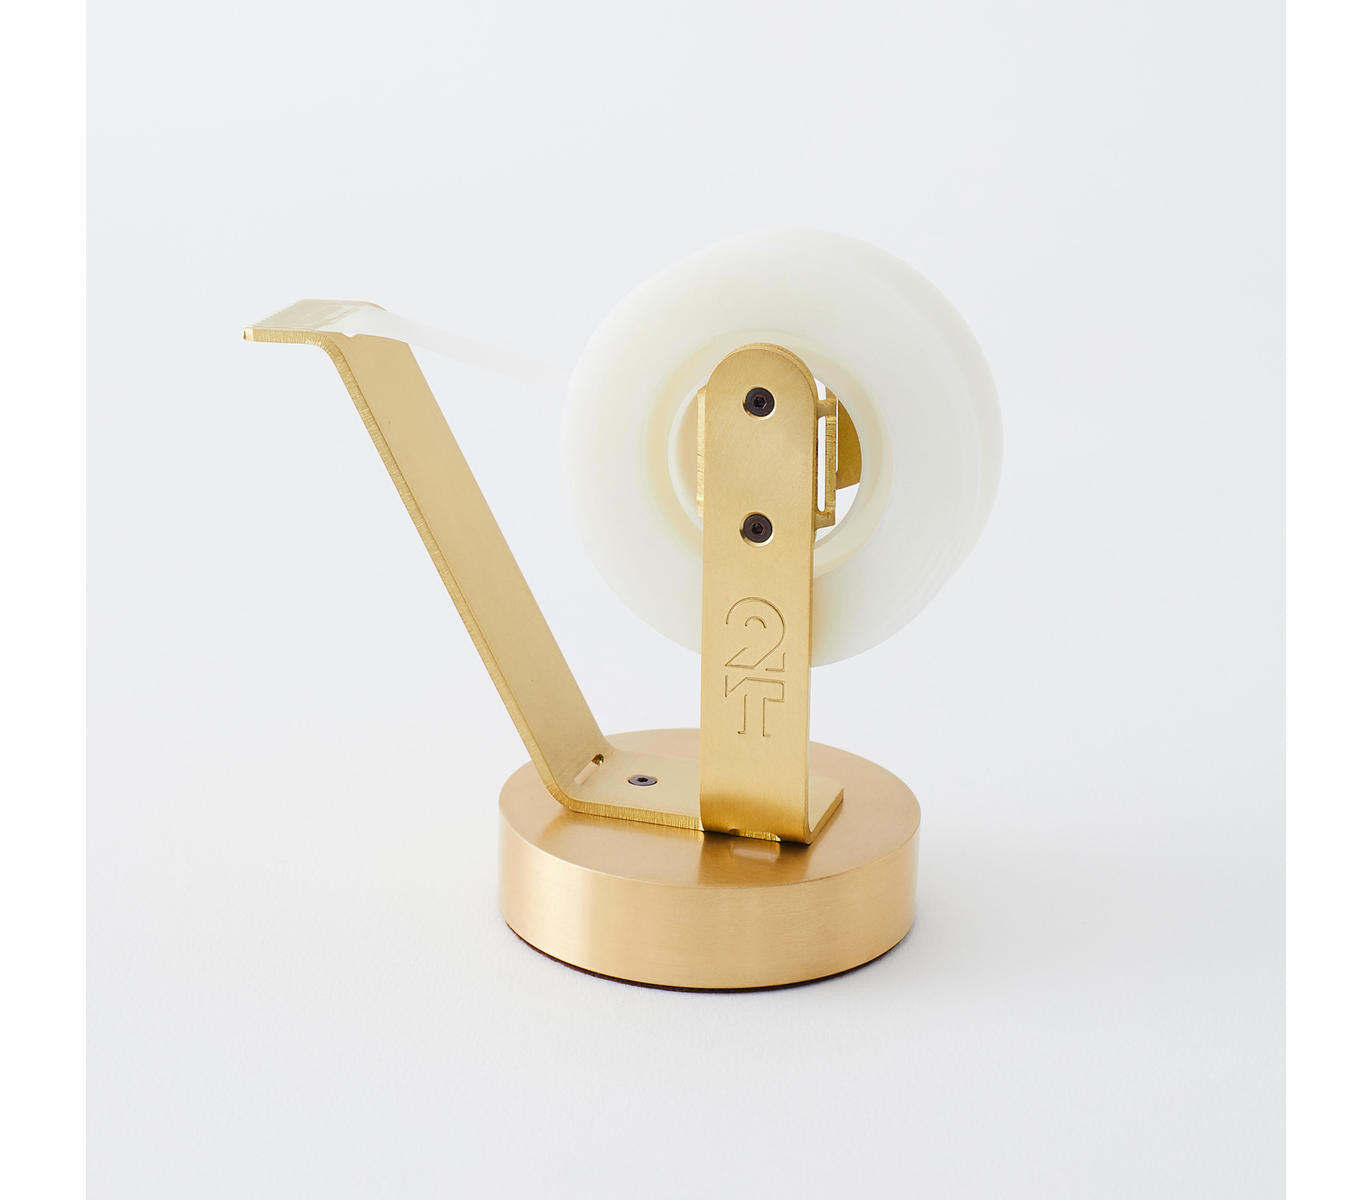 HANDMADE Brass Tape Dispenser Desk